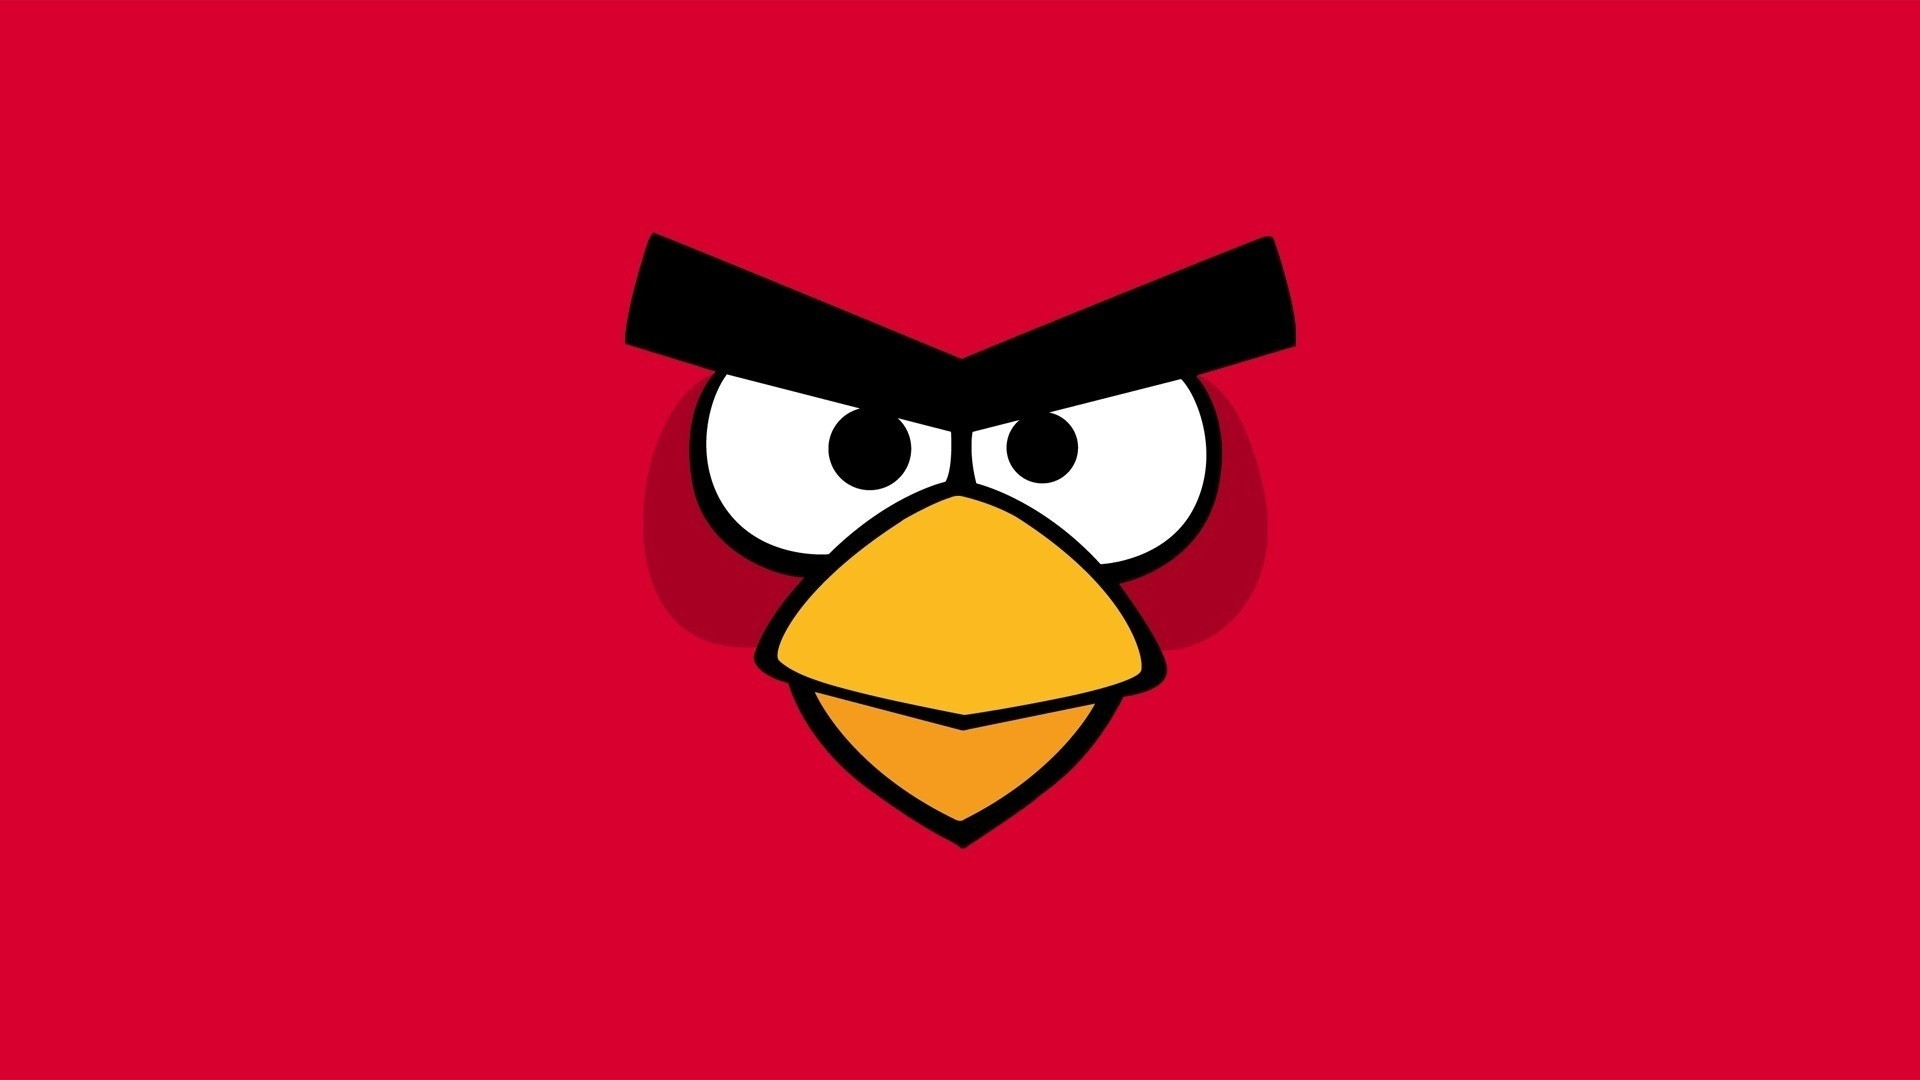 Minimalistic Angry Birds Wallpaper